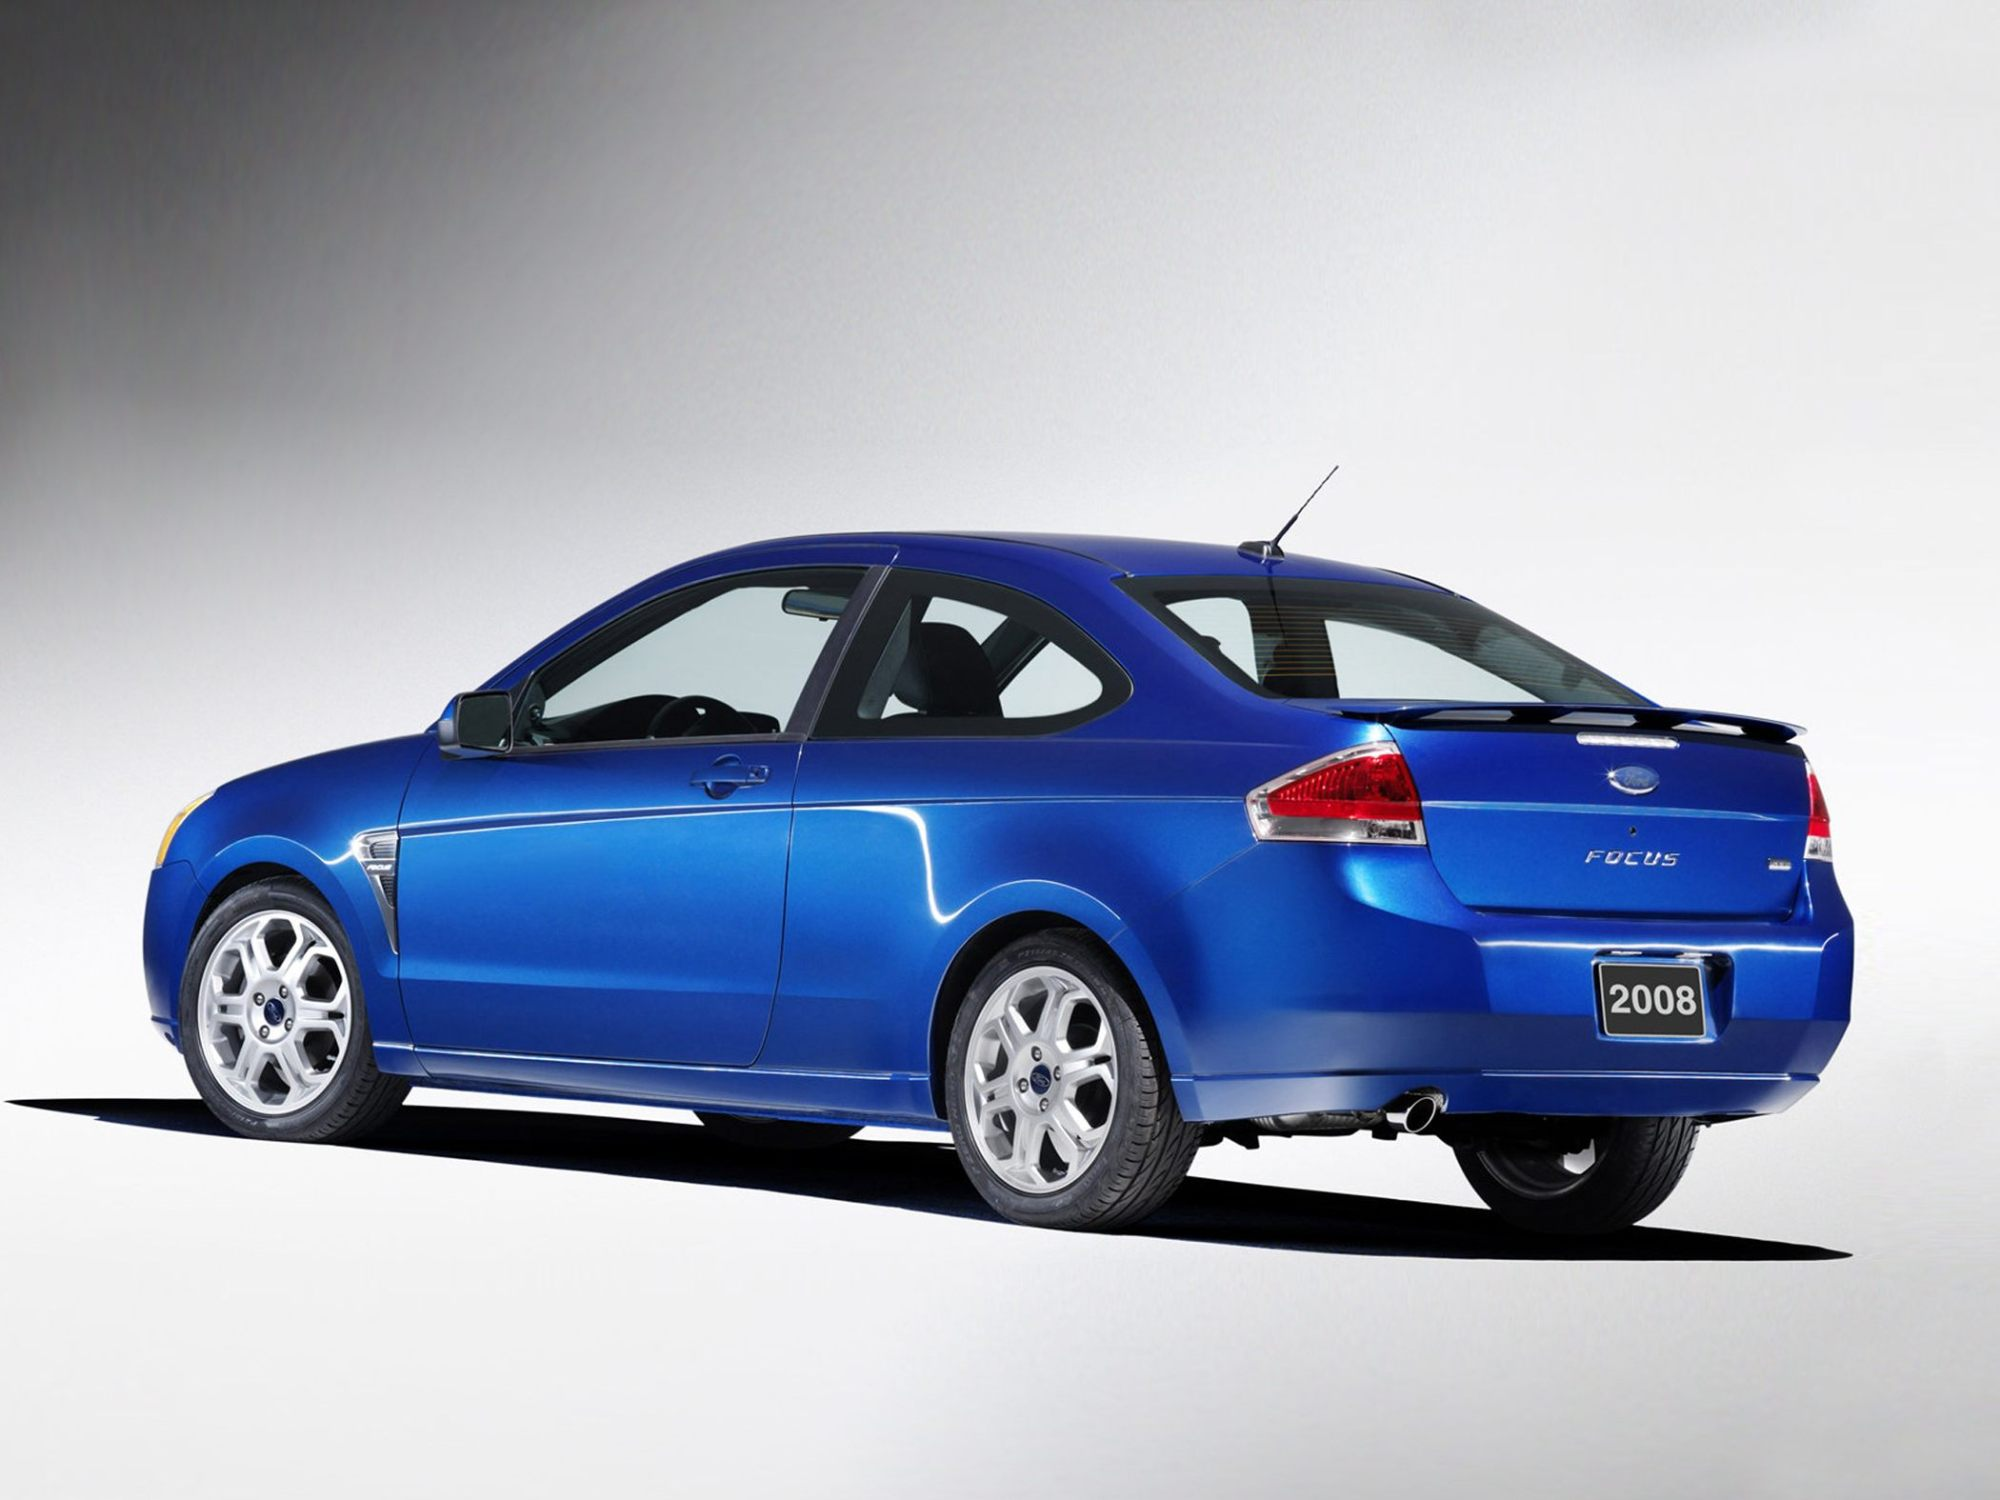 hight resolution of ford focus ii coupe 2010 models 11